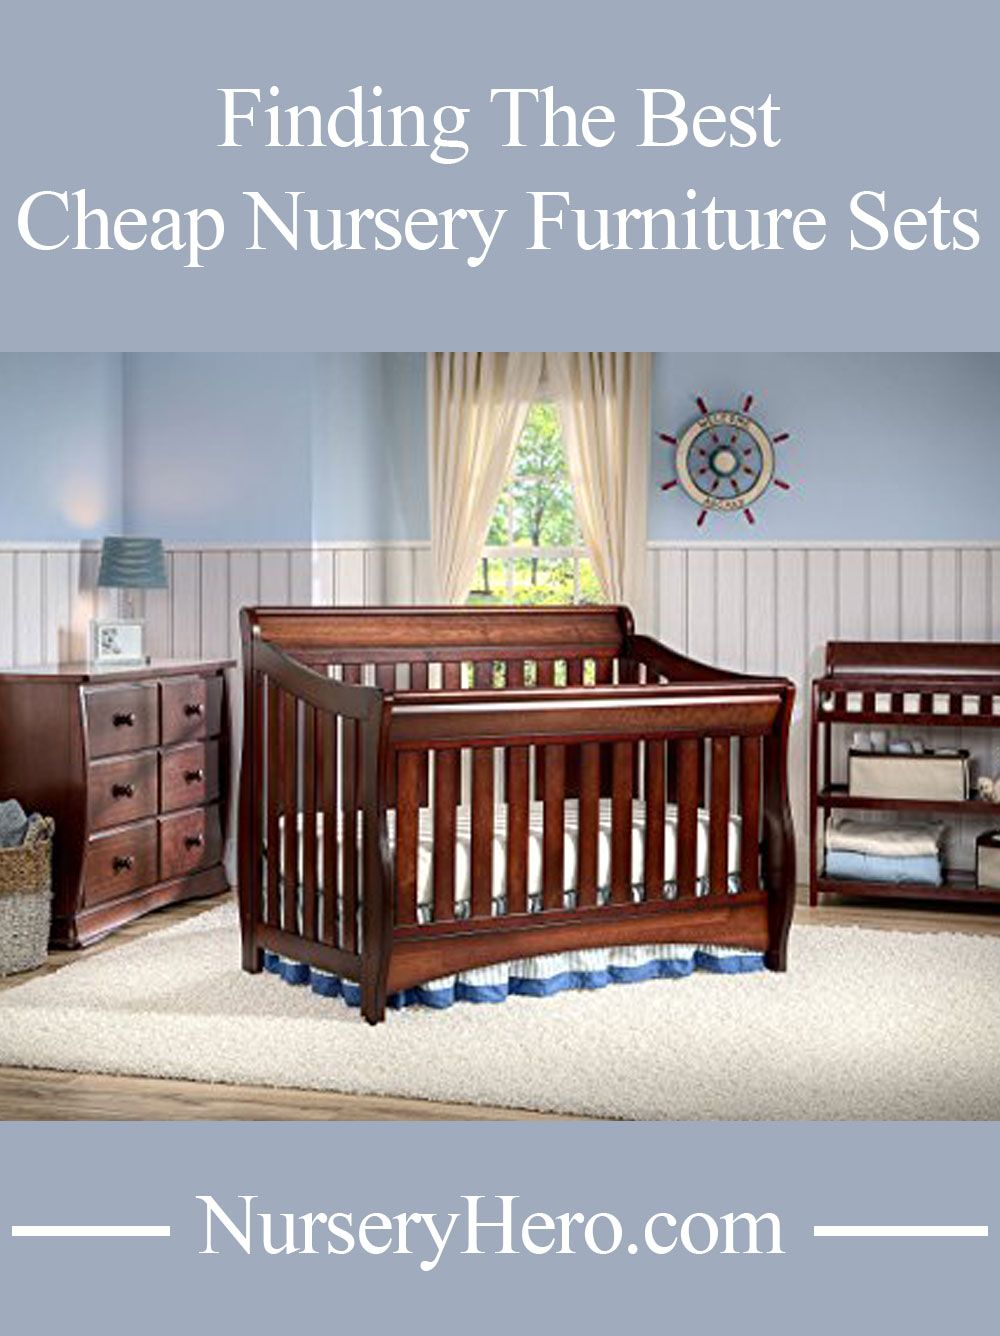 Take A Look At The Best Nursery Furniture Sets To Maximize Your Baby Budget